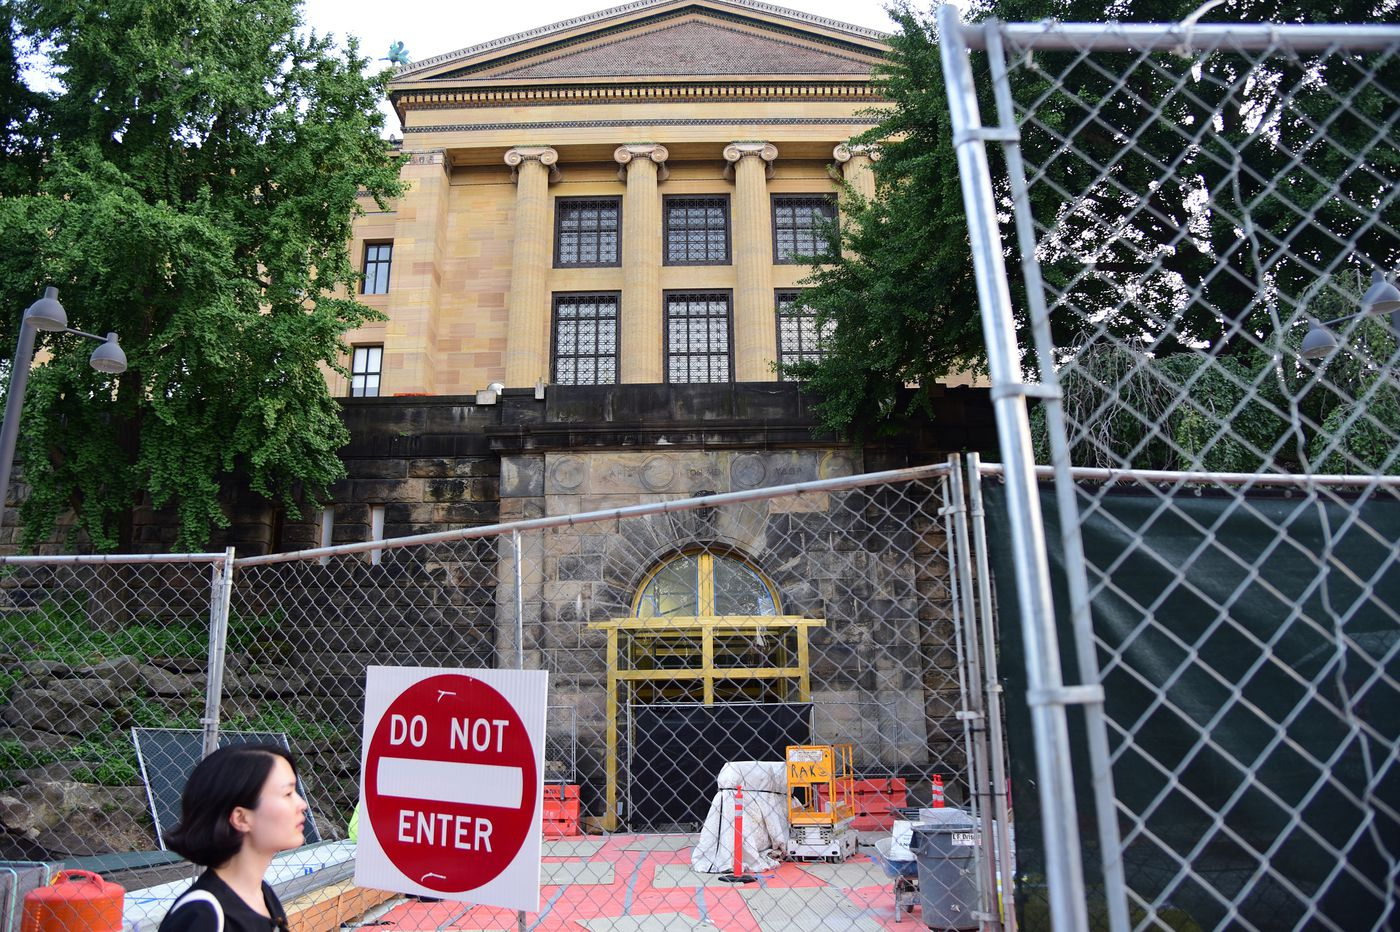 The Philadelphia Museum of Art is tearing itself apart in plain view. Here's what to know as construction ramps up.